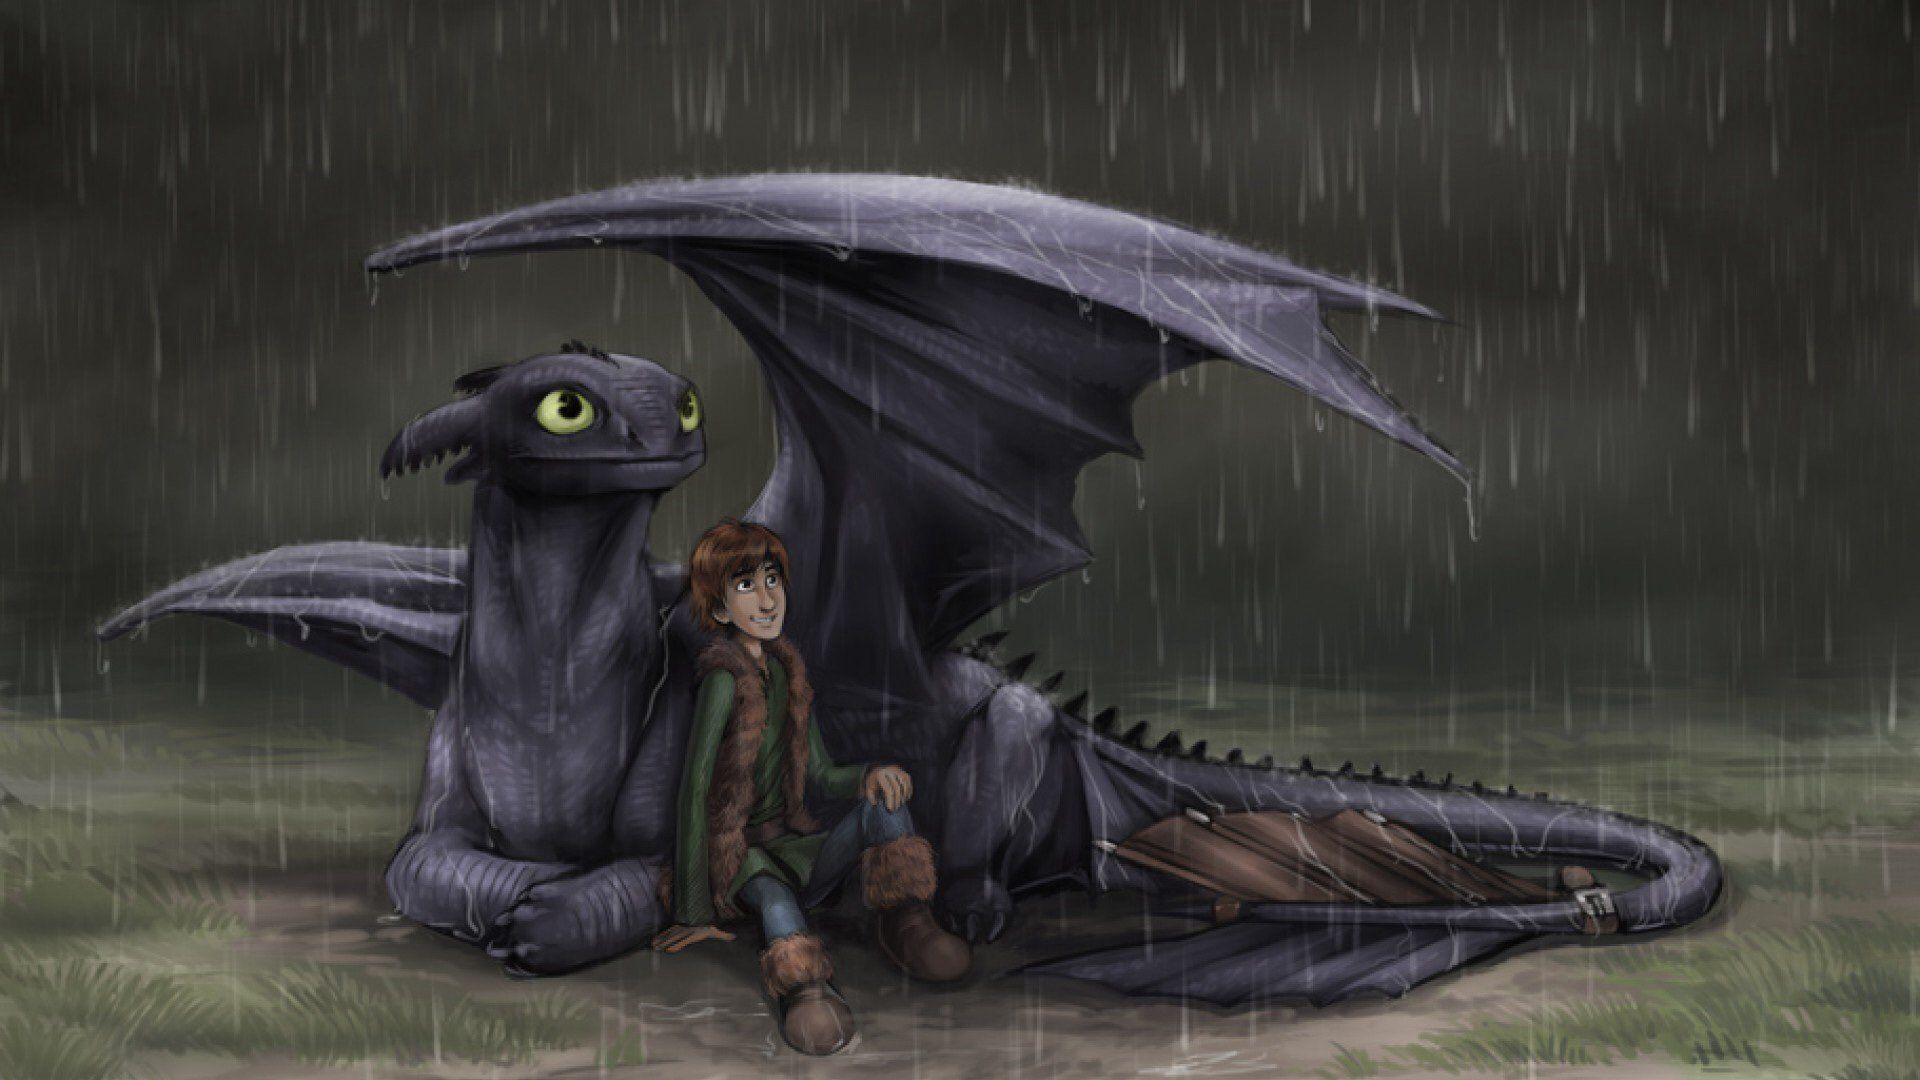 HTTYD 3 Wallpapers - Wallpaper Cave